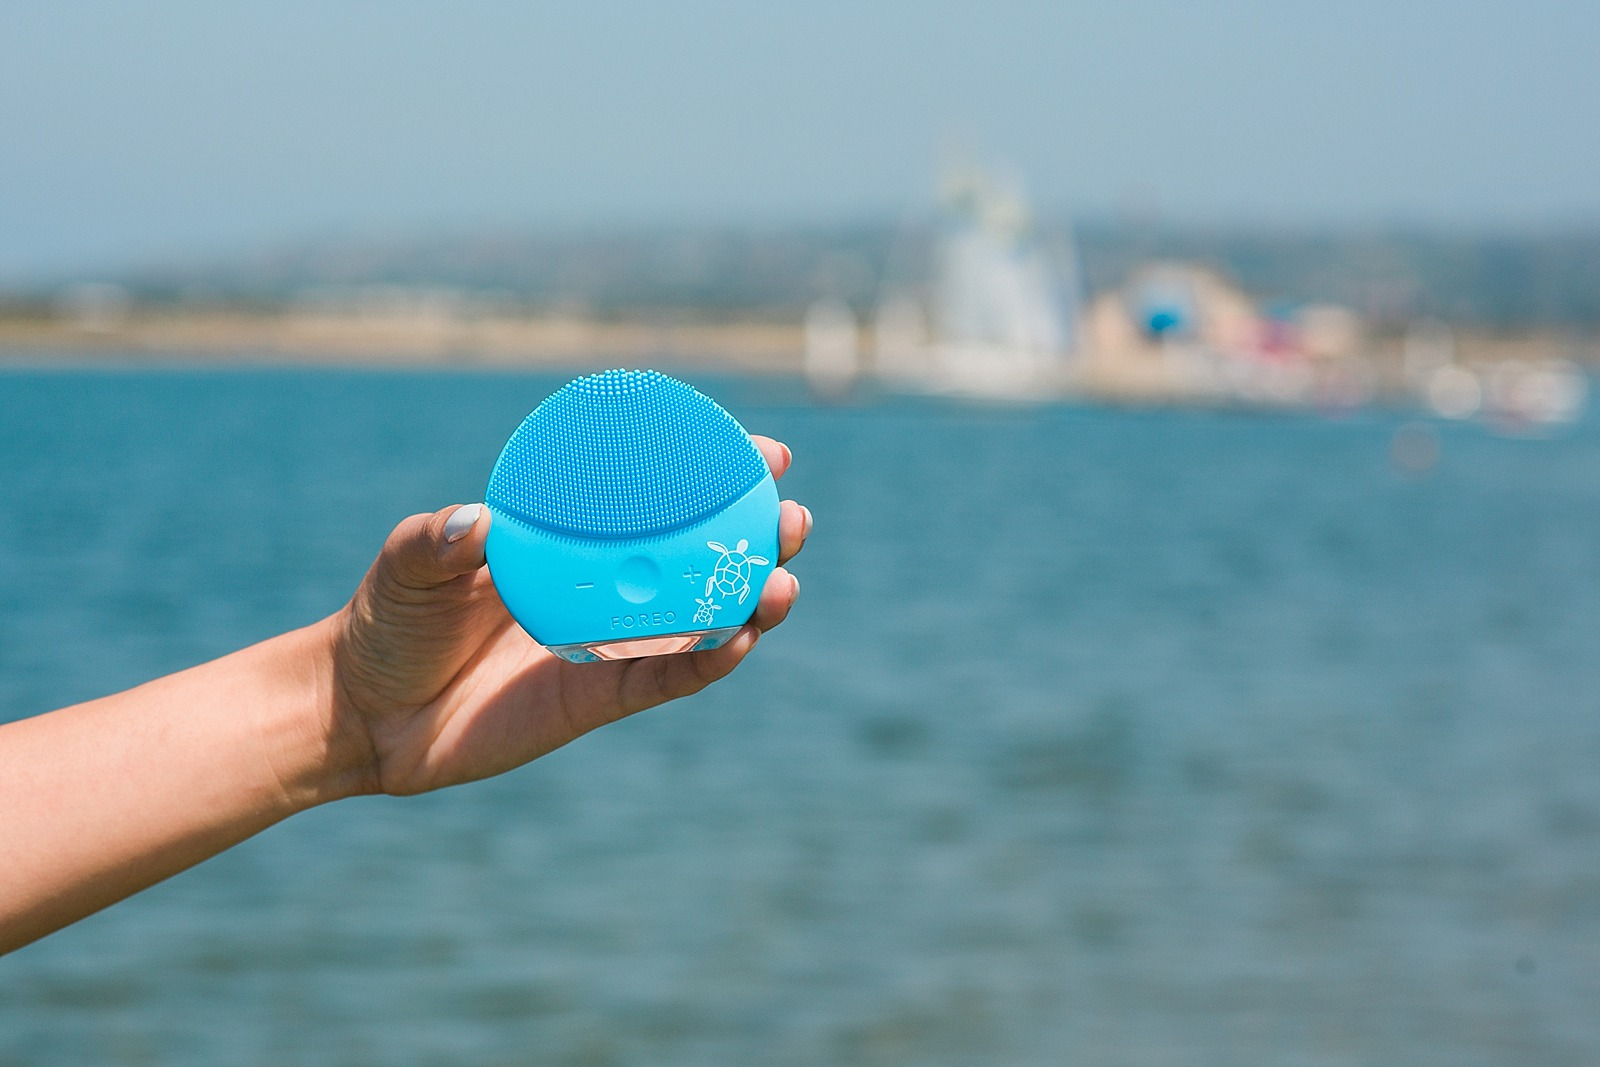 foreo-save-the-sea-luna-mini-2-phoenix-photographer-faces-of-phoenix-photographer-copyright-diana-elizabeth-photography_0131